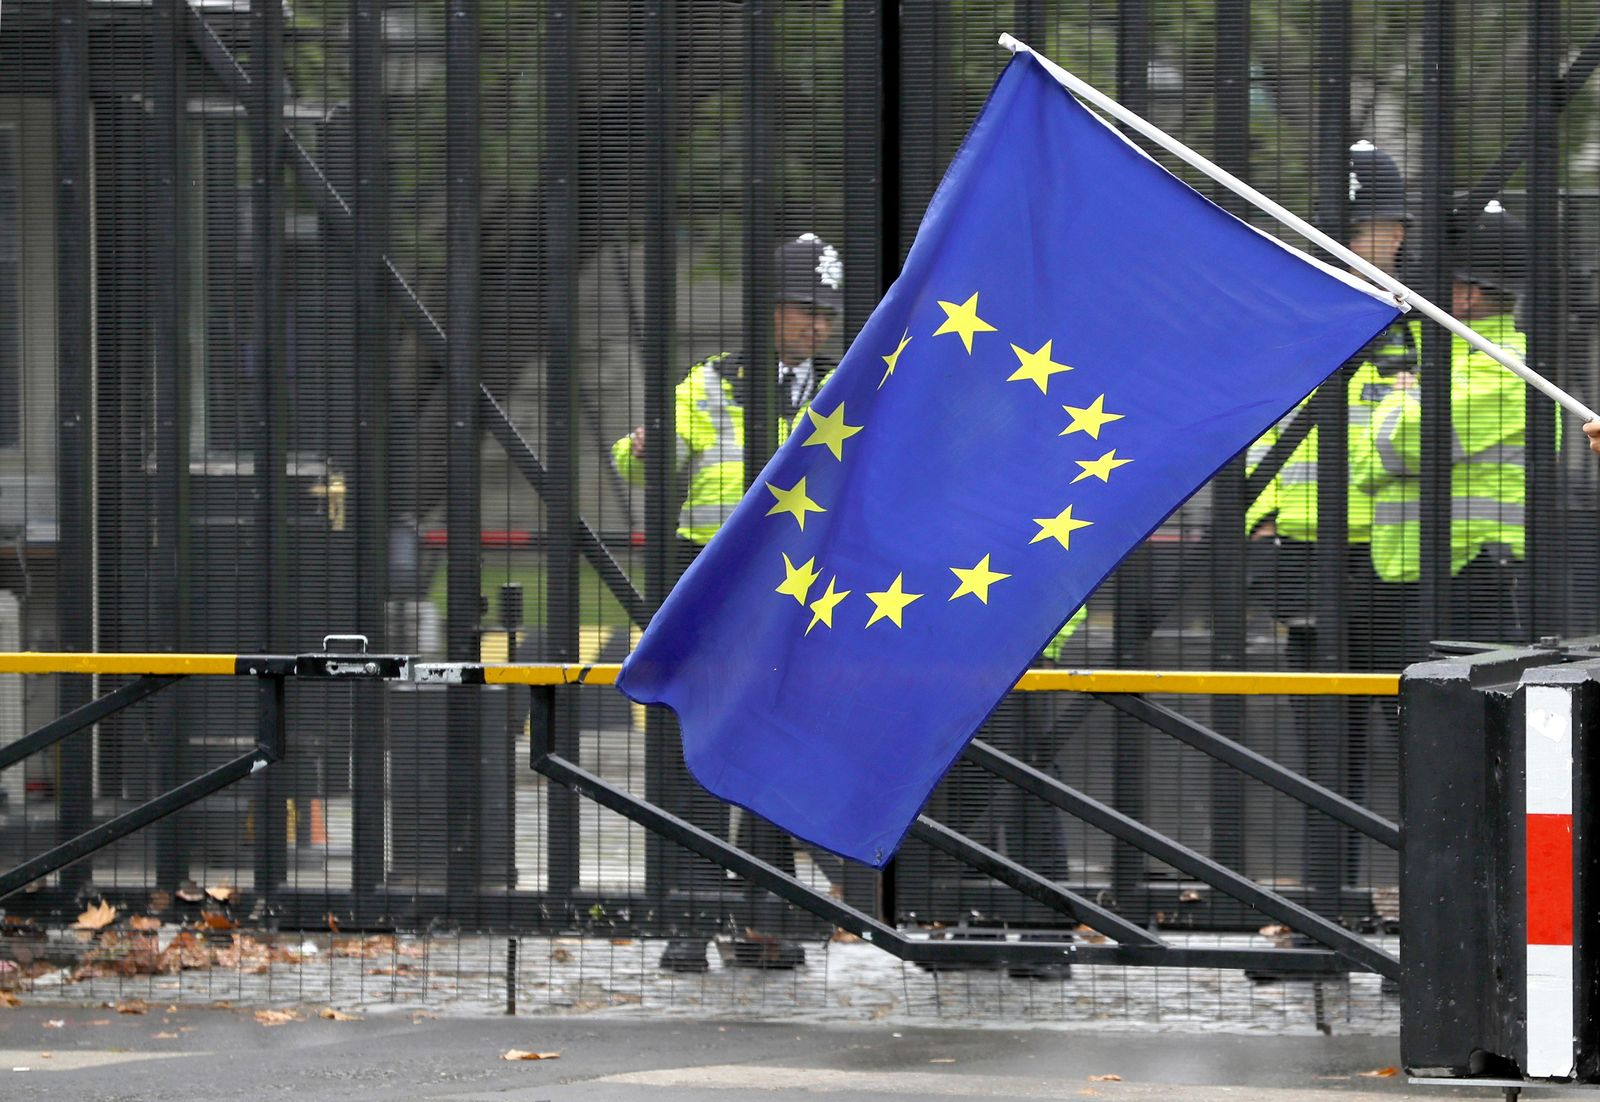 A European Union flag is flown in front of entrance gates to Parliament in London, Monday, Sept. 9, 2019. (AP Photo/Kirsty Wigglesworth)